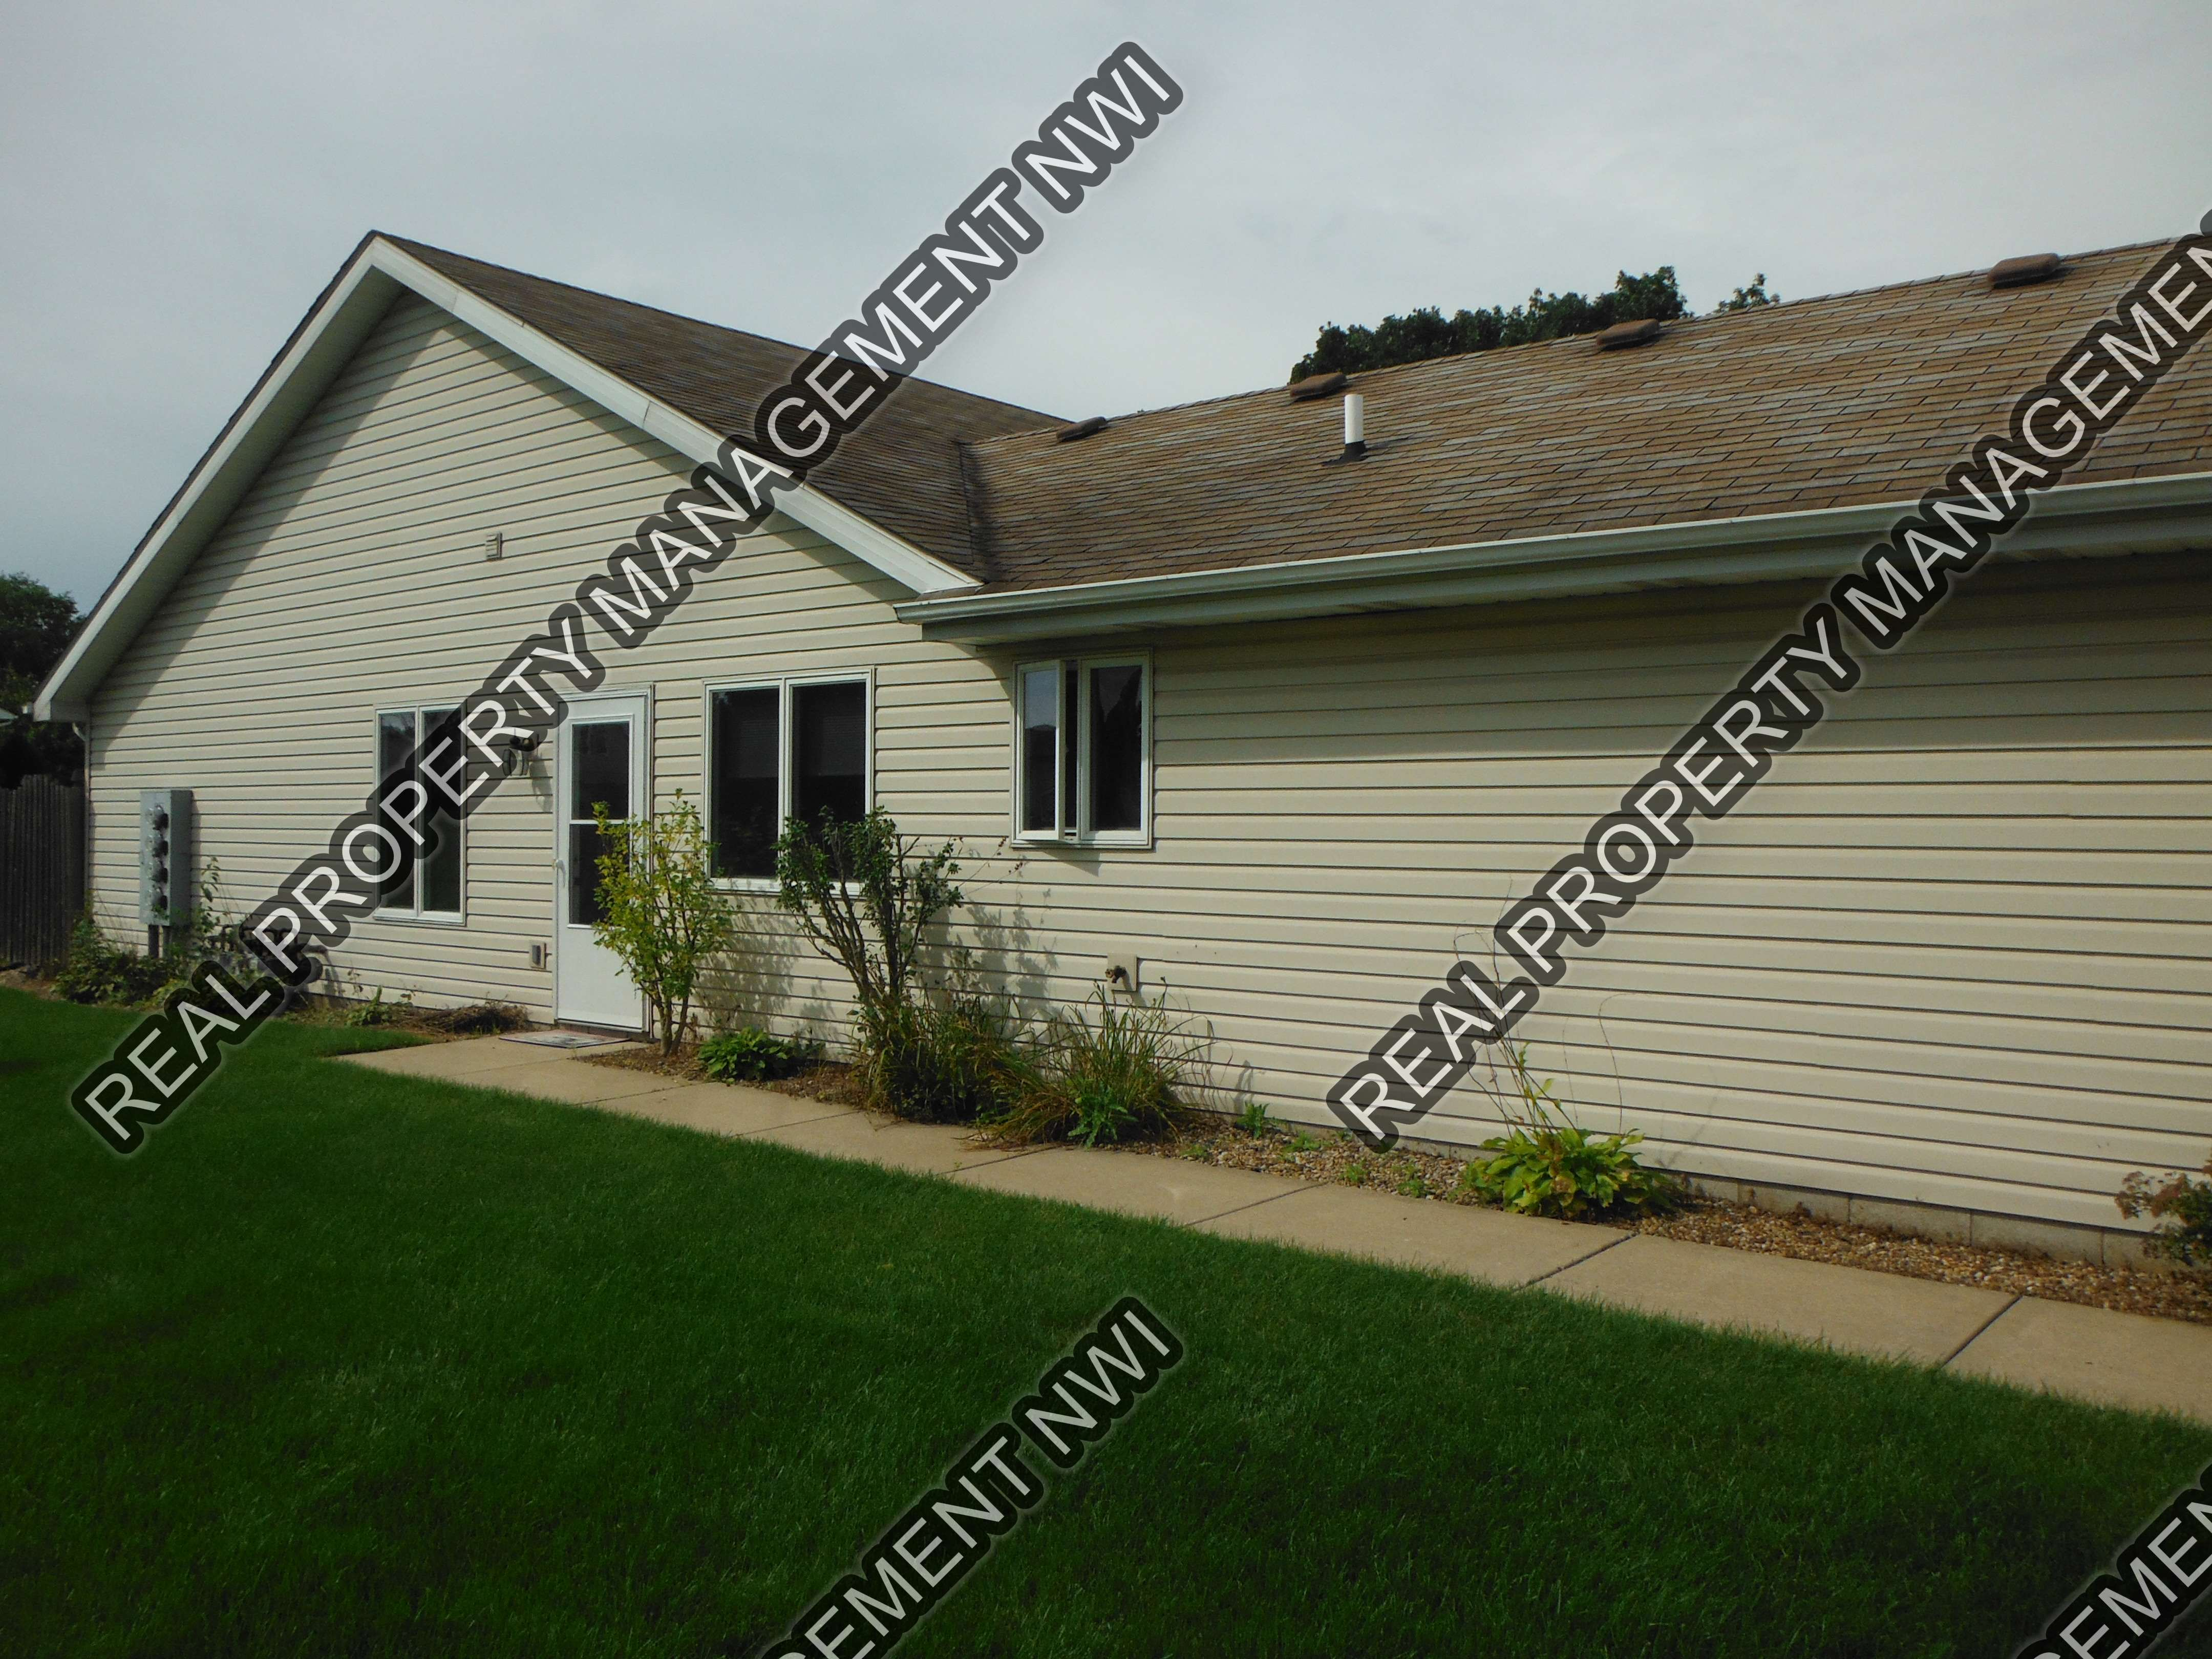 Townhouse for Rent in Crown Point